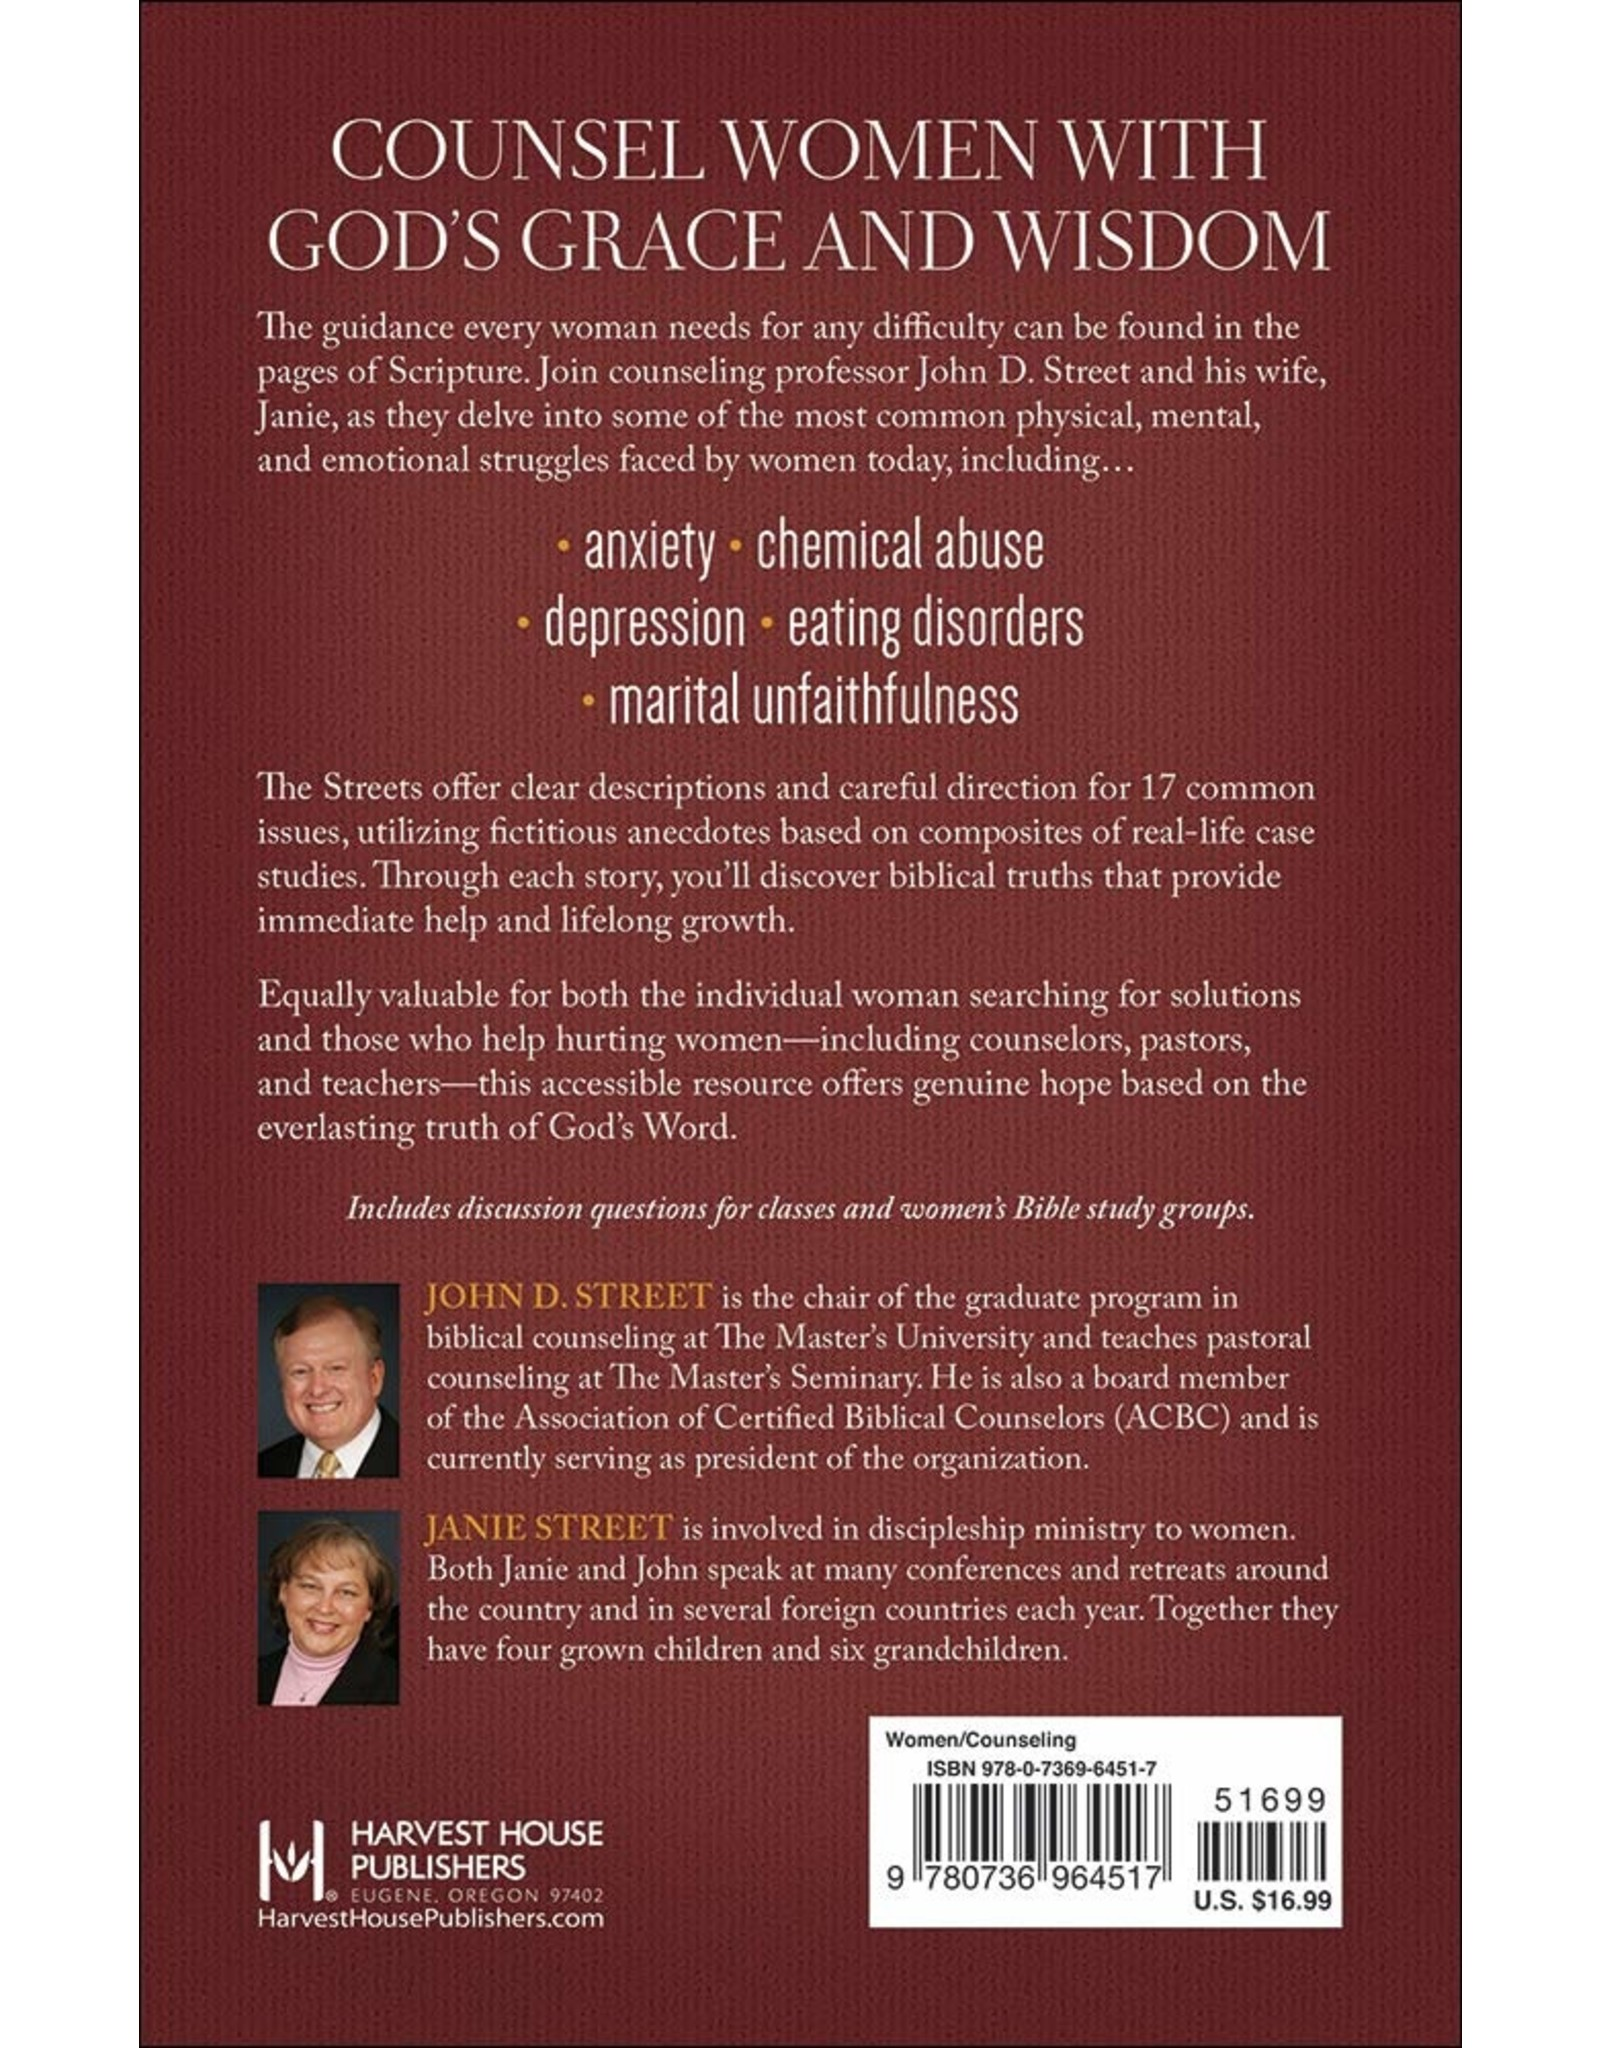 Harvest House Publishers The Biblical Counseling Guide for Women